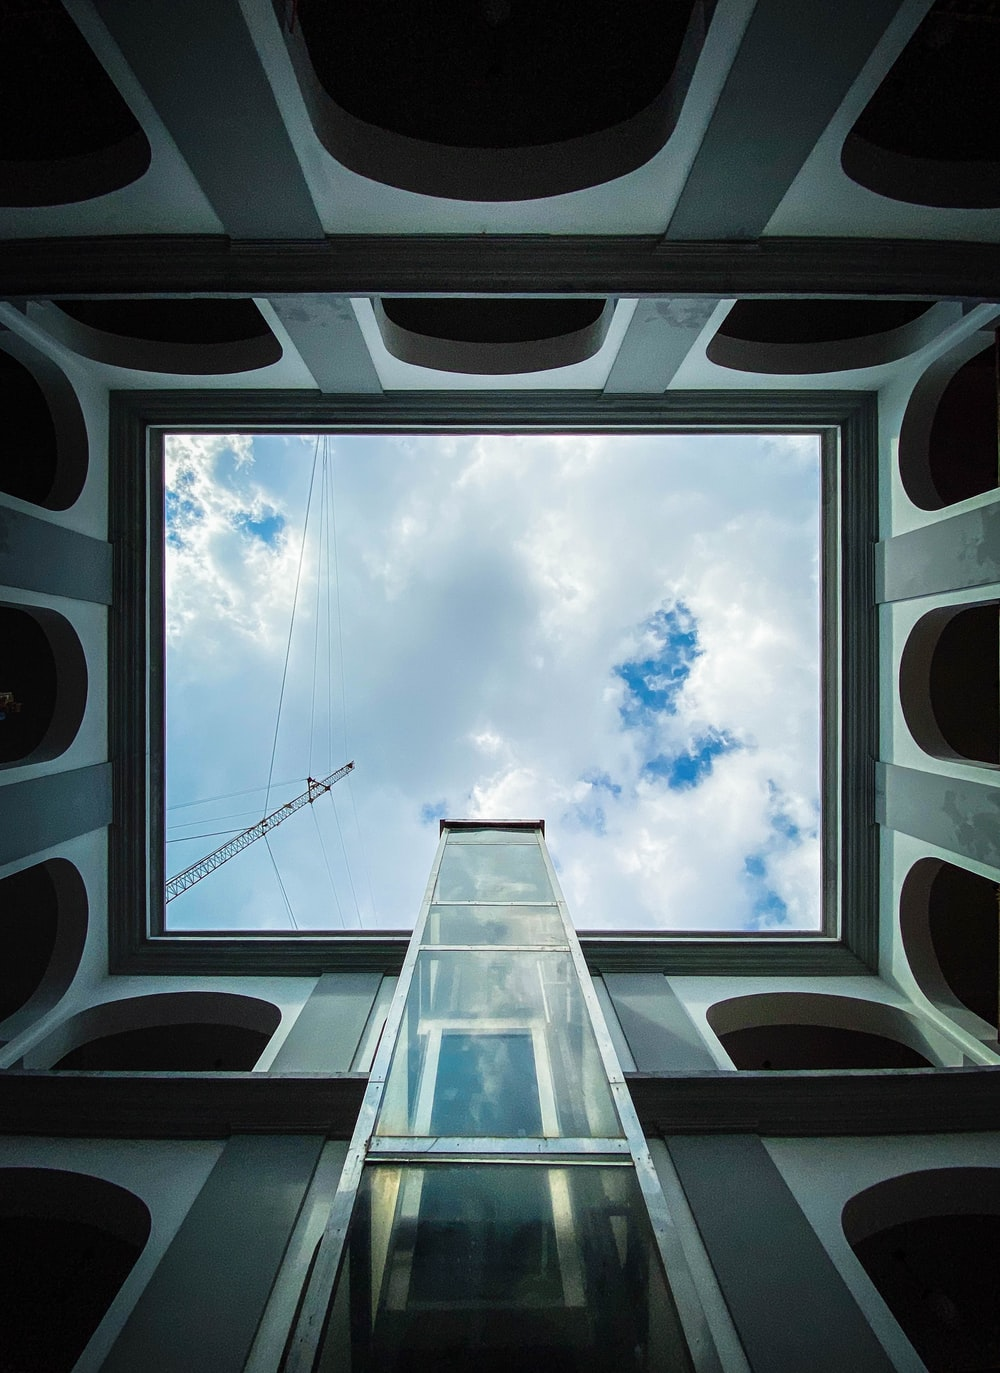 low-angle photography of white and gray building under white and blue skies during daytime